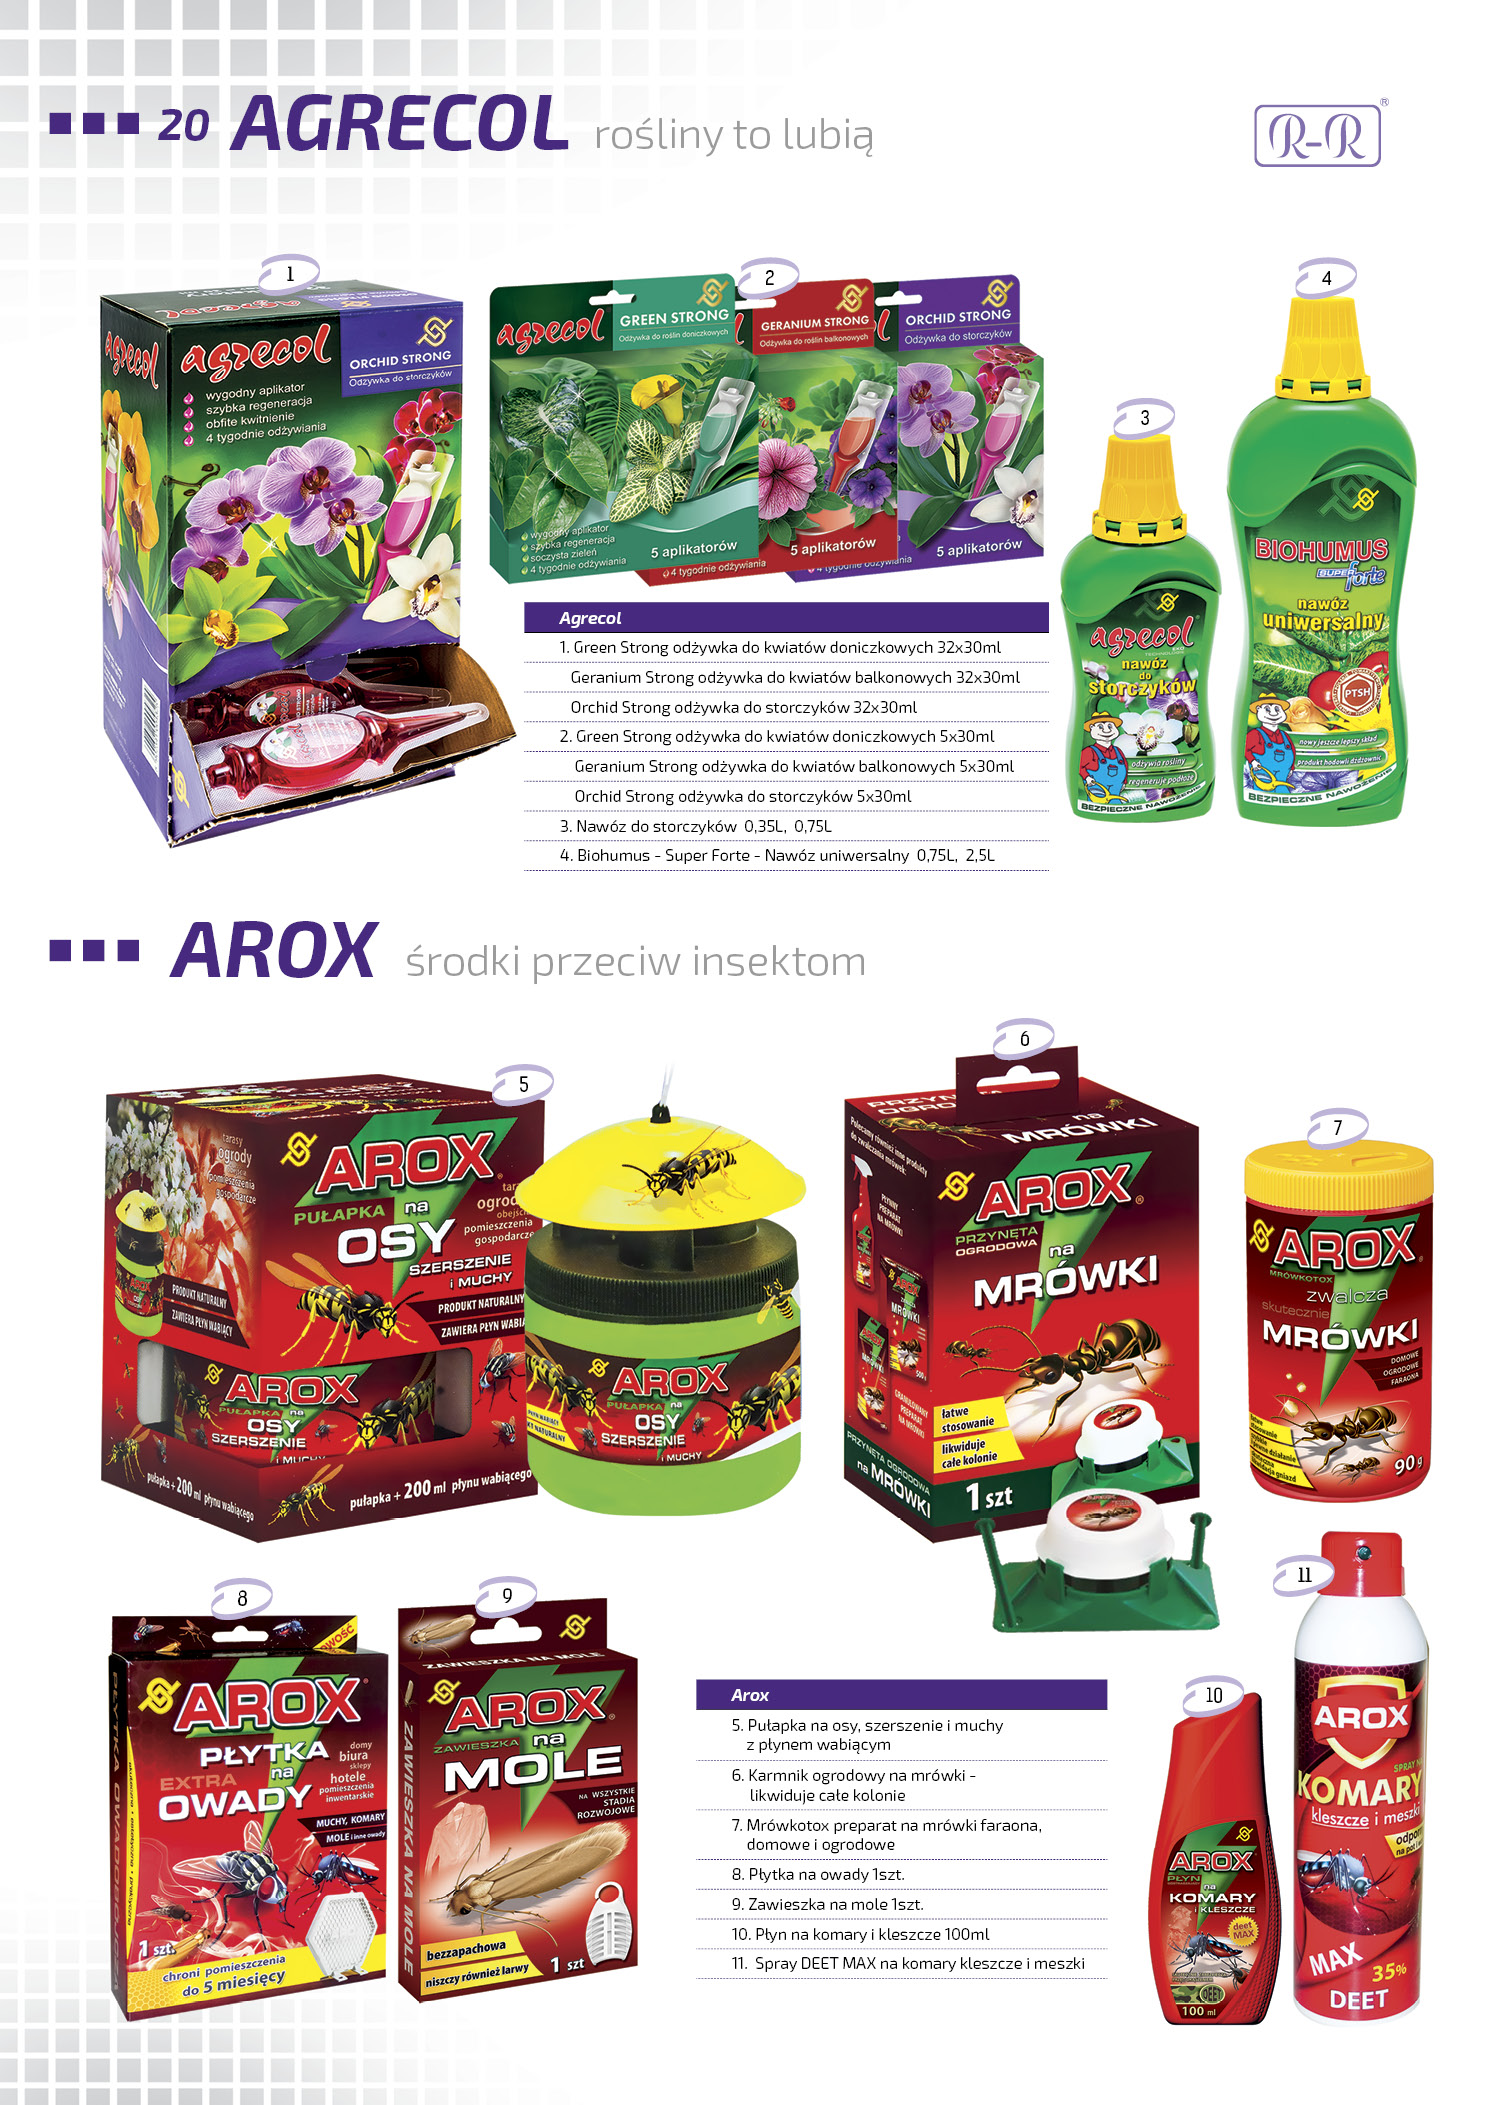 Agrecol / Arox